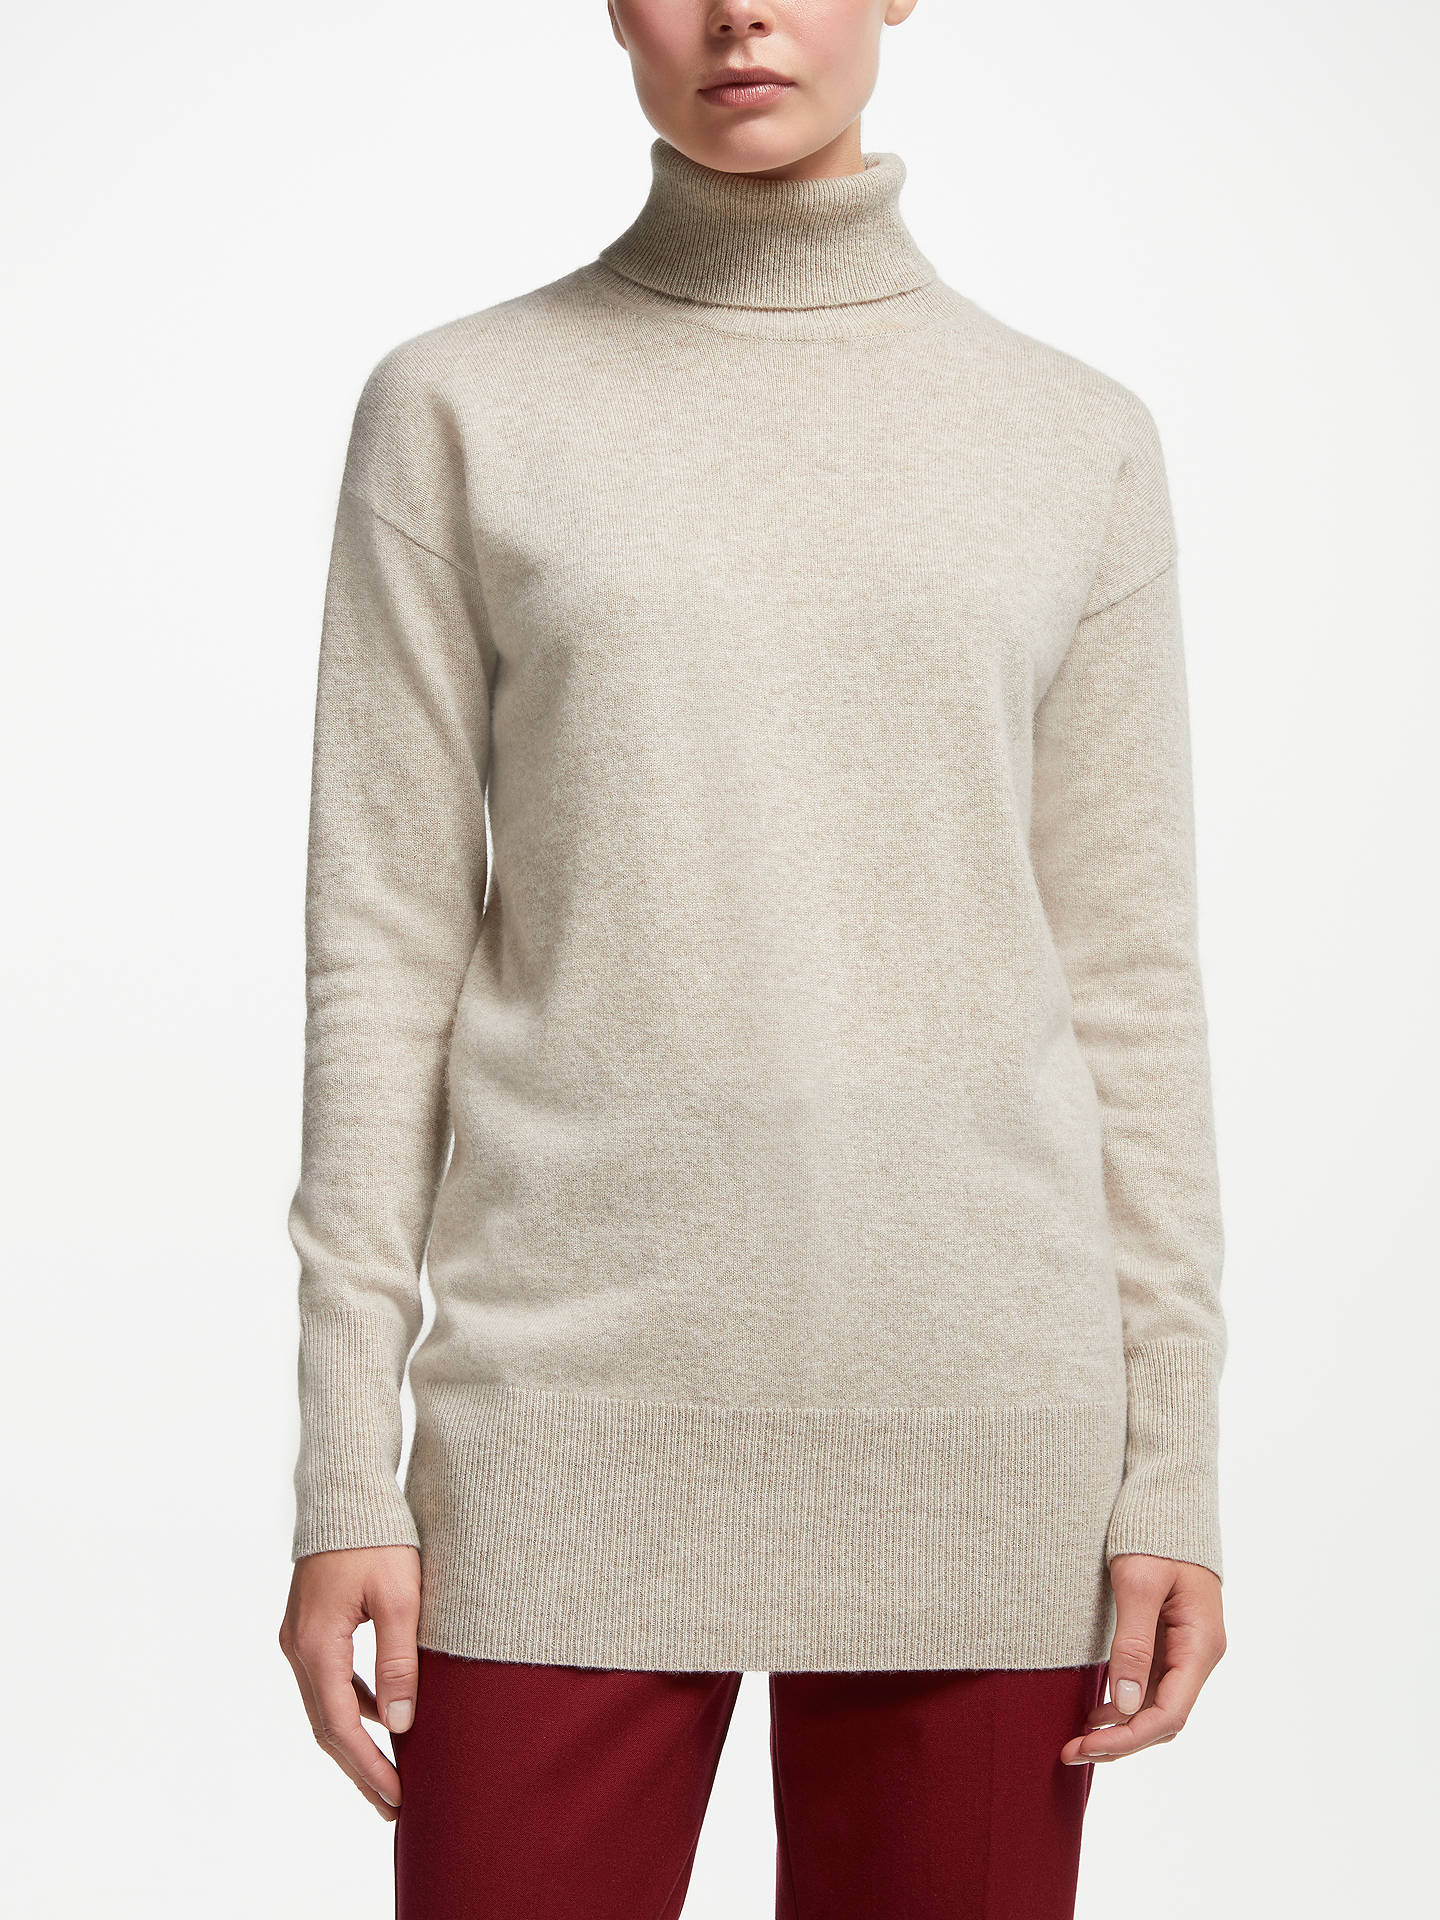 BuyJohn Lewis & Partners Cashmere Relaxed Roll Neck Sweater, Neutral, 8 Online at johnlewis.com